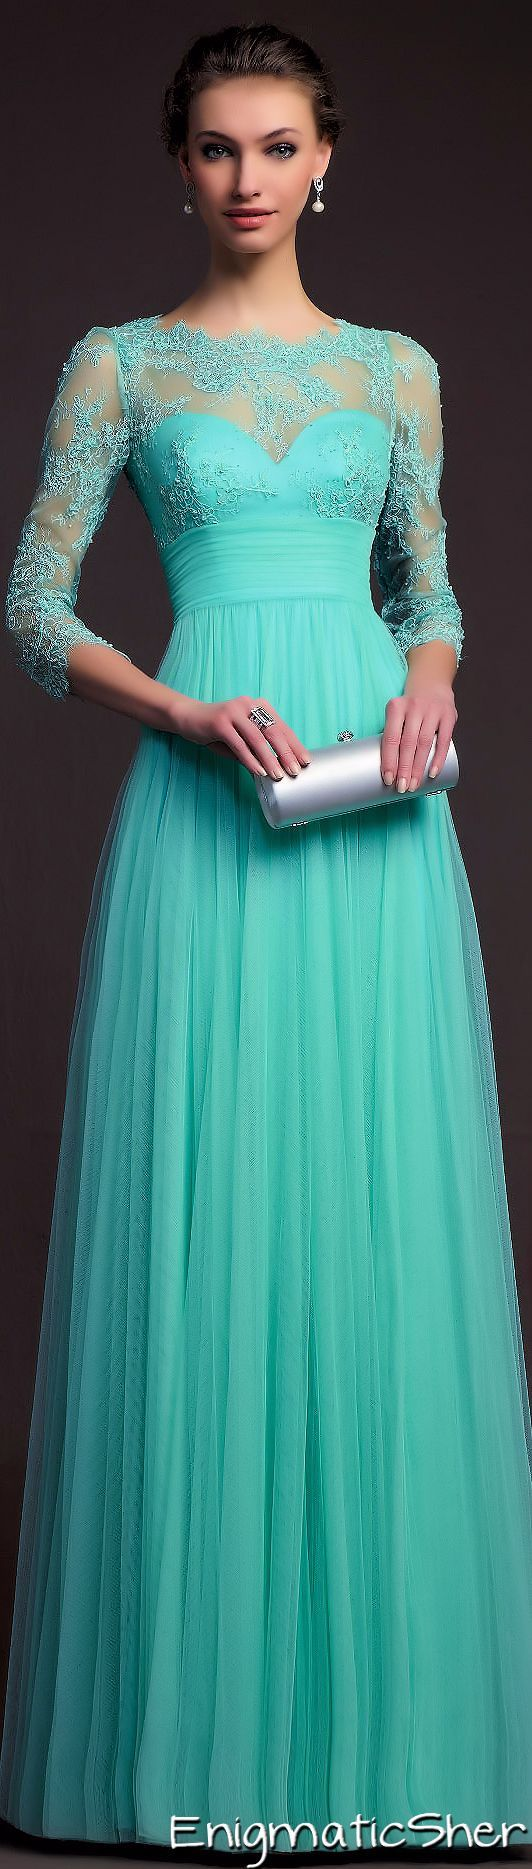 Turquoise Tulle Long Elegant Lace Evening Dress With Sleeves Prom ...